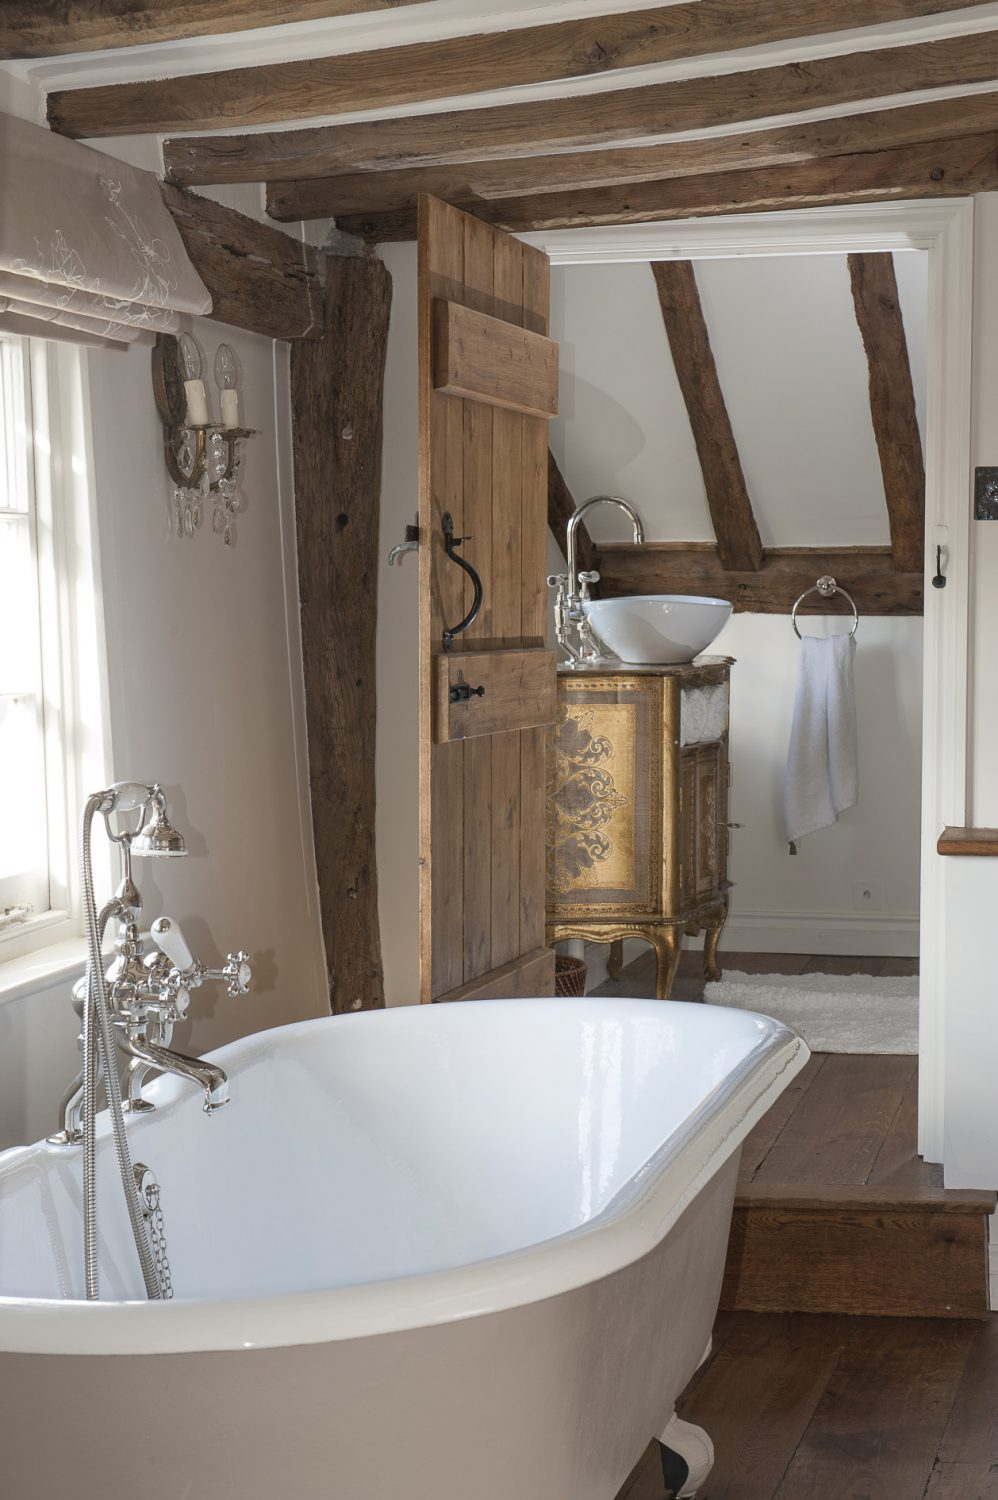 Charlotte and Andrew remodelled their en suite to provide both a romantic bathroom, with a rolltop bath, and a double-shower room